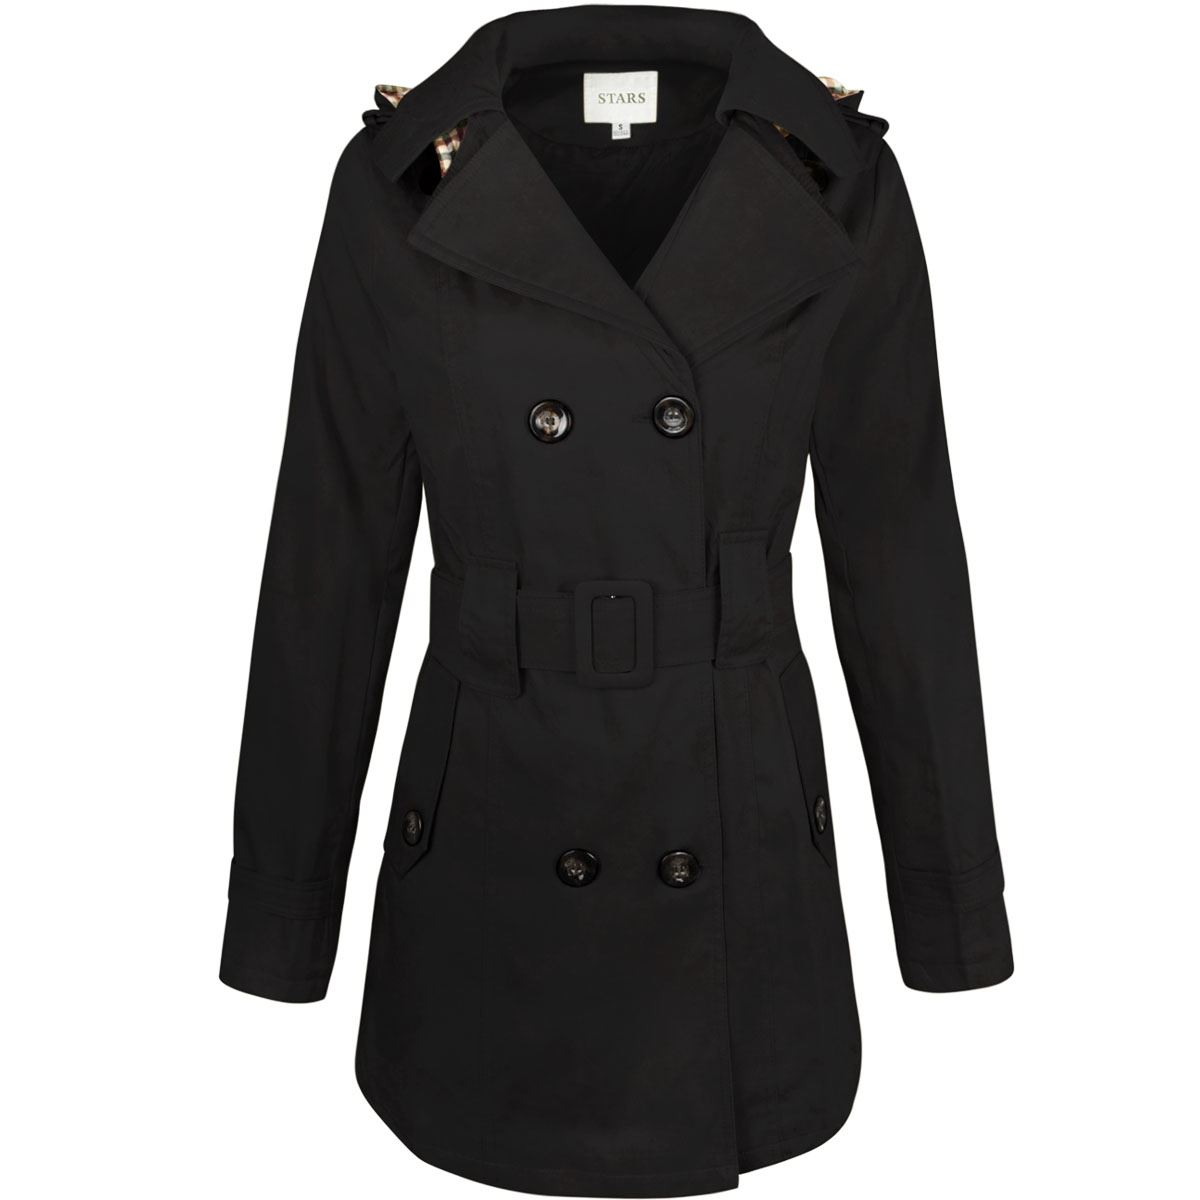 WOMENS-LADIES-DOUBLE-BREASTED-MAC-BELTED-COAT-CANVAS-SMART-JACKET-TRENCH-PARKA thumbnail 3